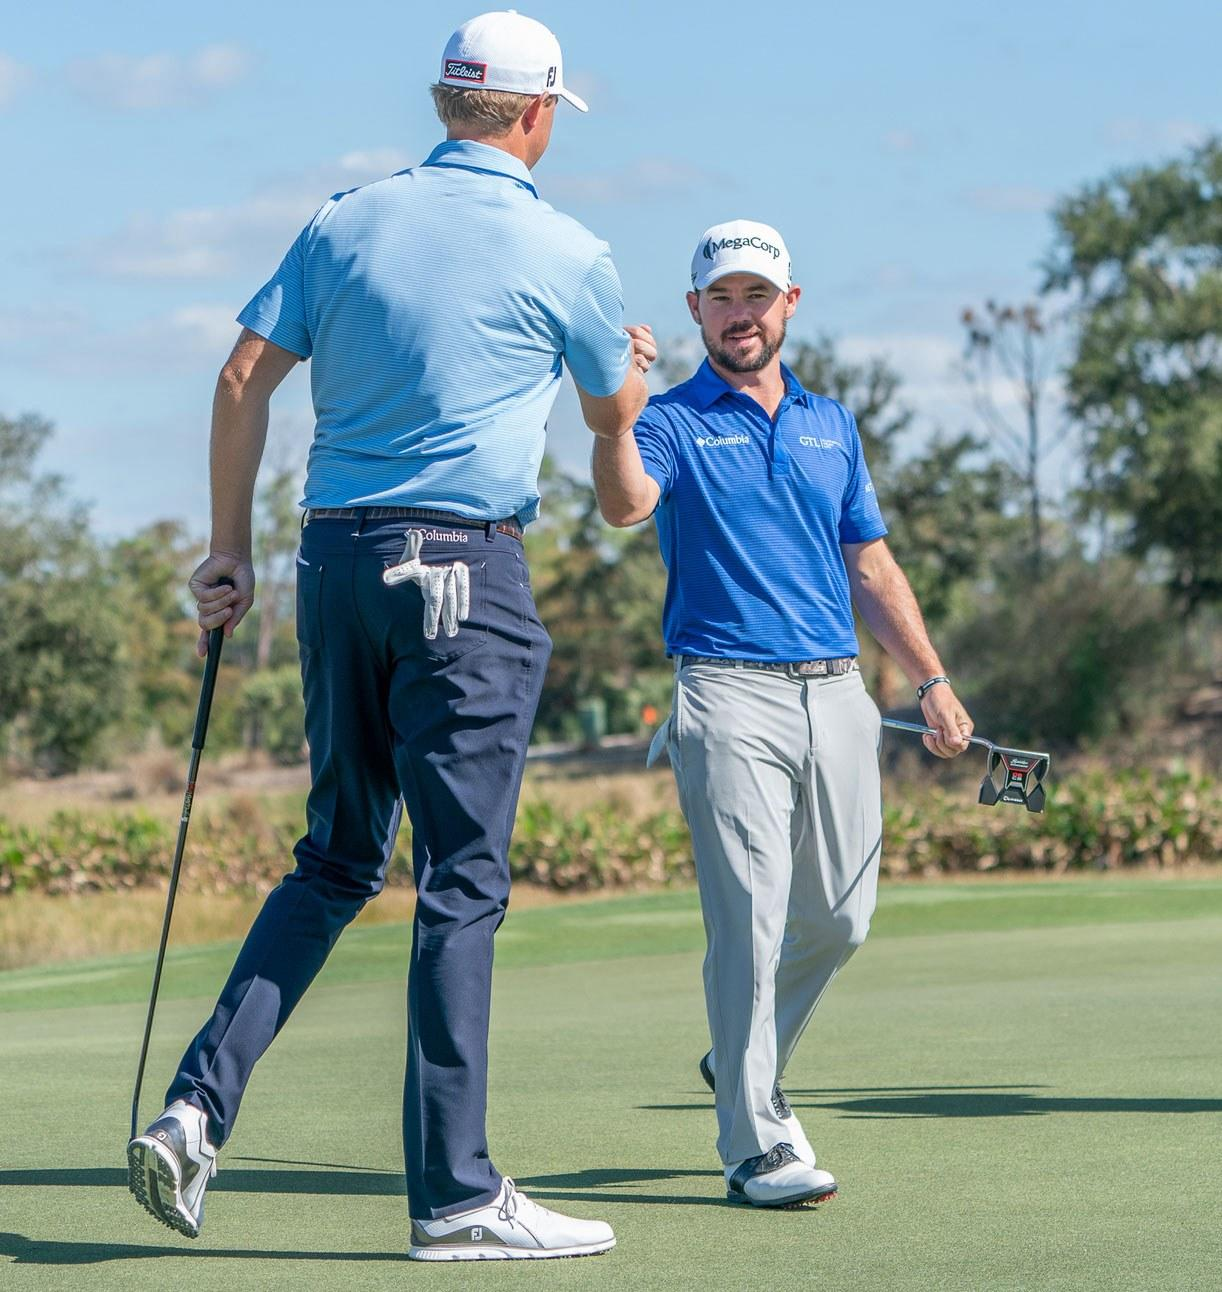 How much prize money each golfer earned at the 2018 QBE Shootout